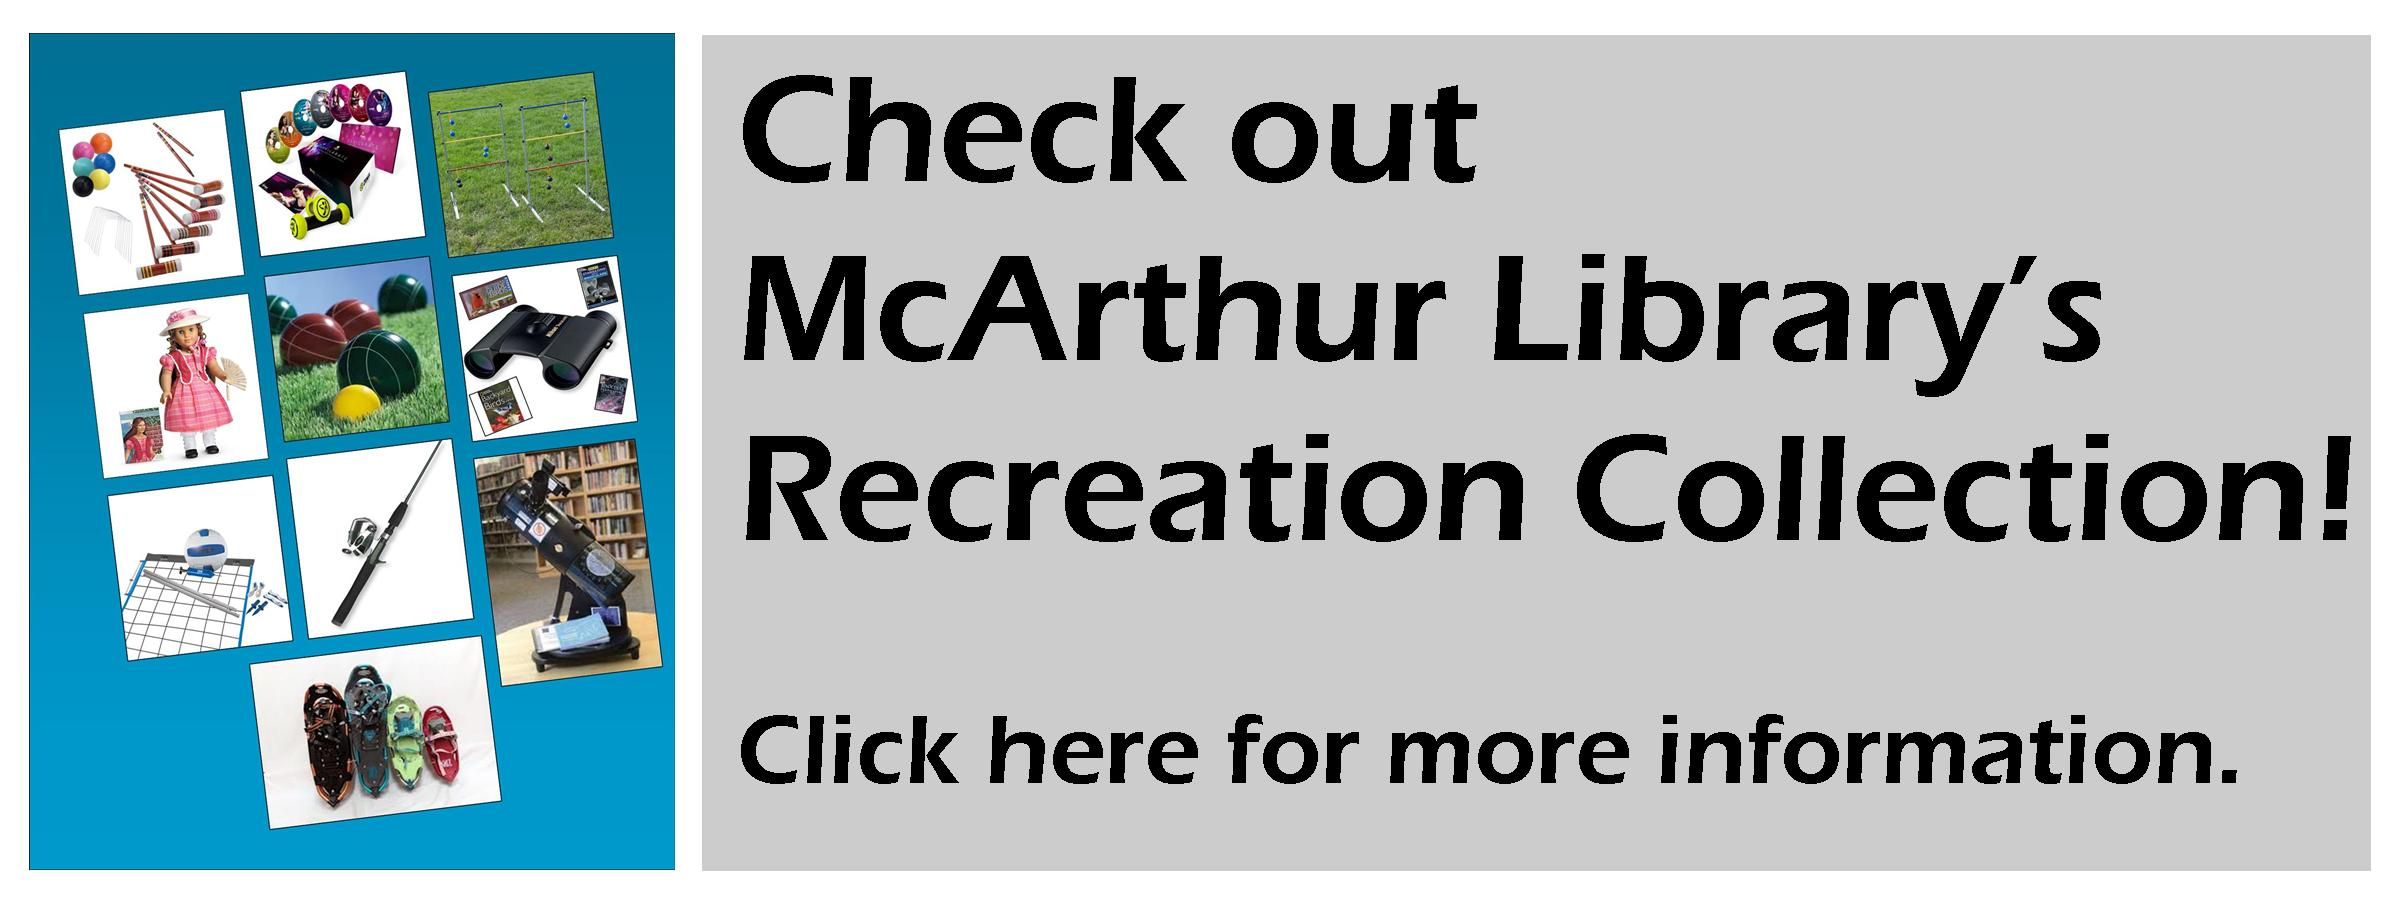 Link to Recreation Collection